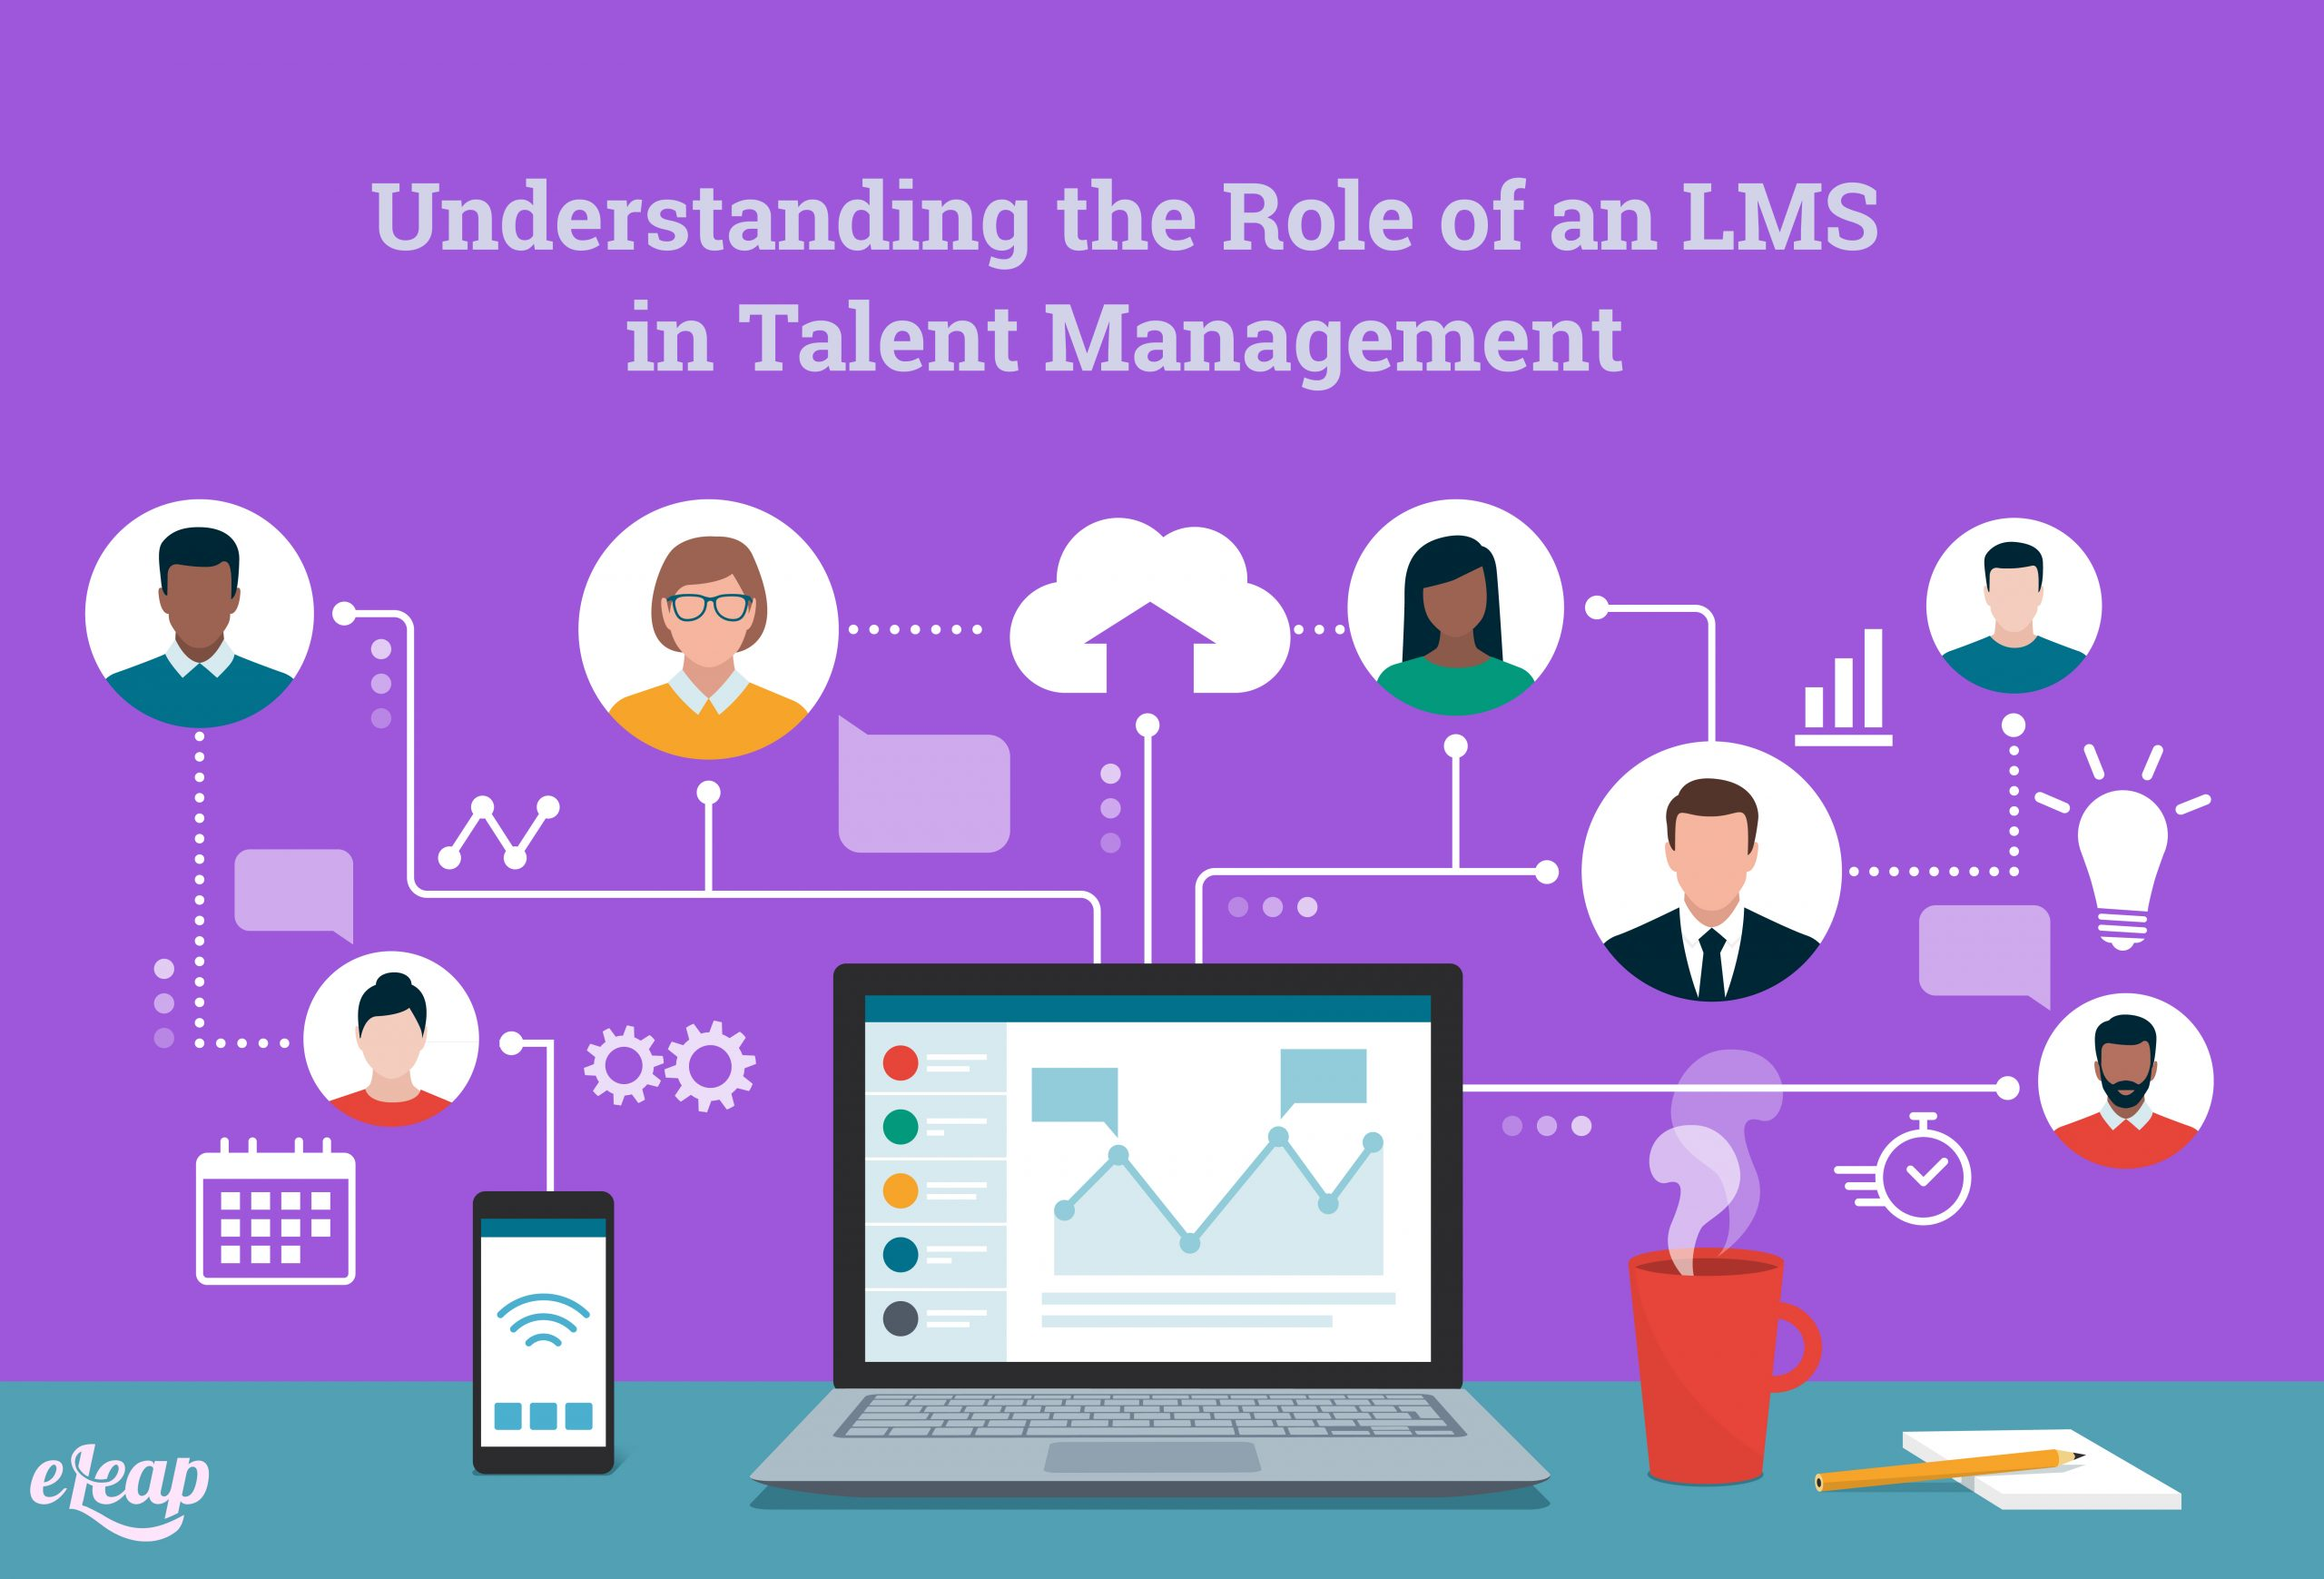 Understanding the Role of an LMS in Talent Management